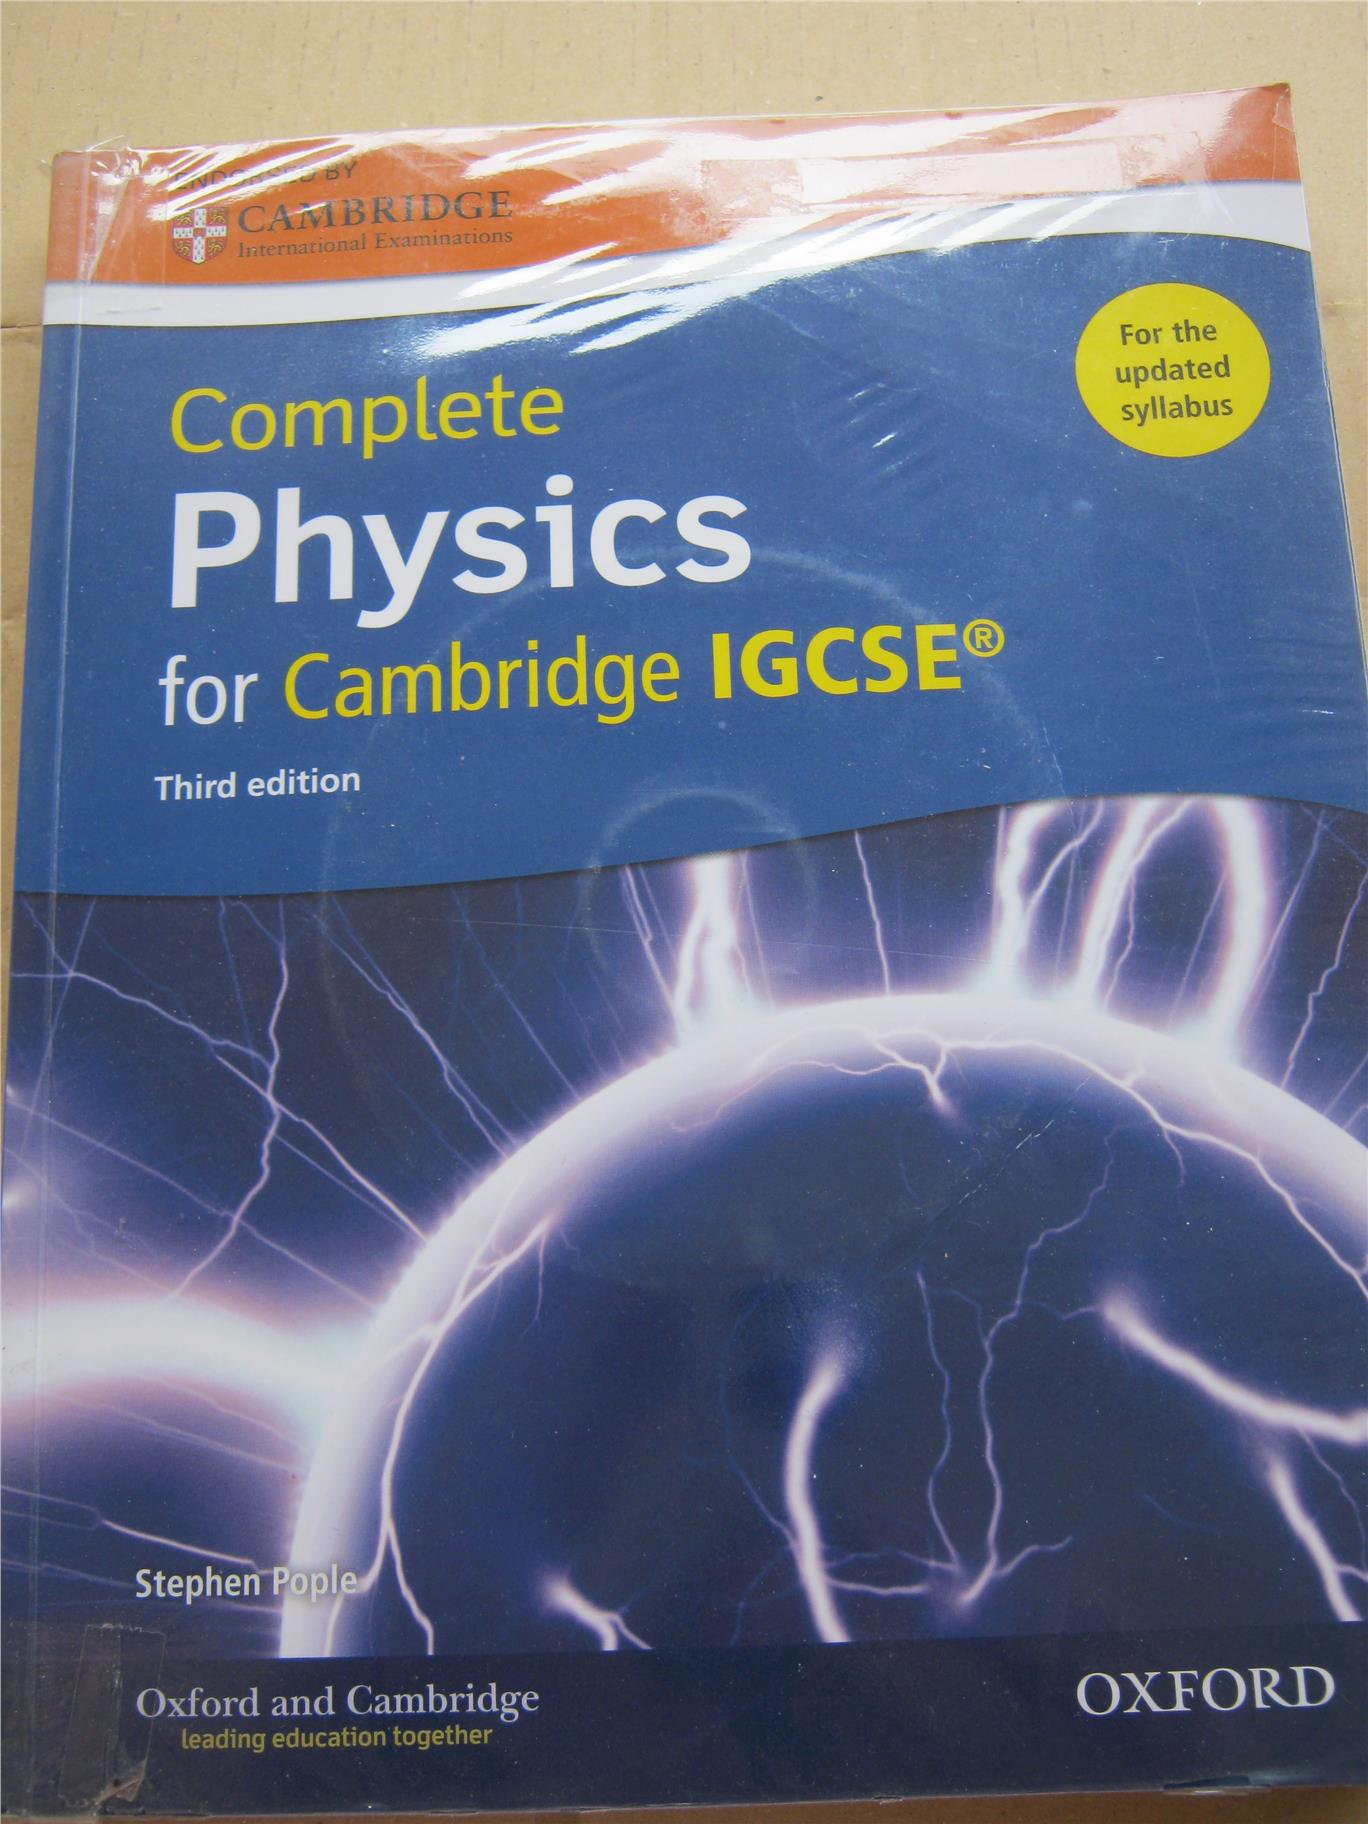 2nd hand: Complete Physics for Cambridge IGCSE ISBN: 9780198308713